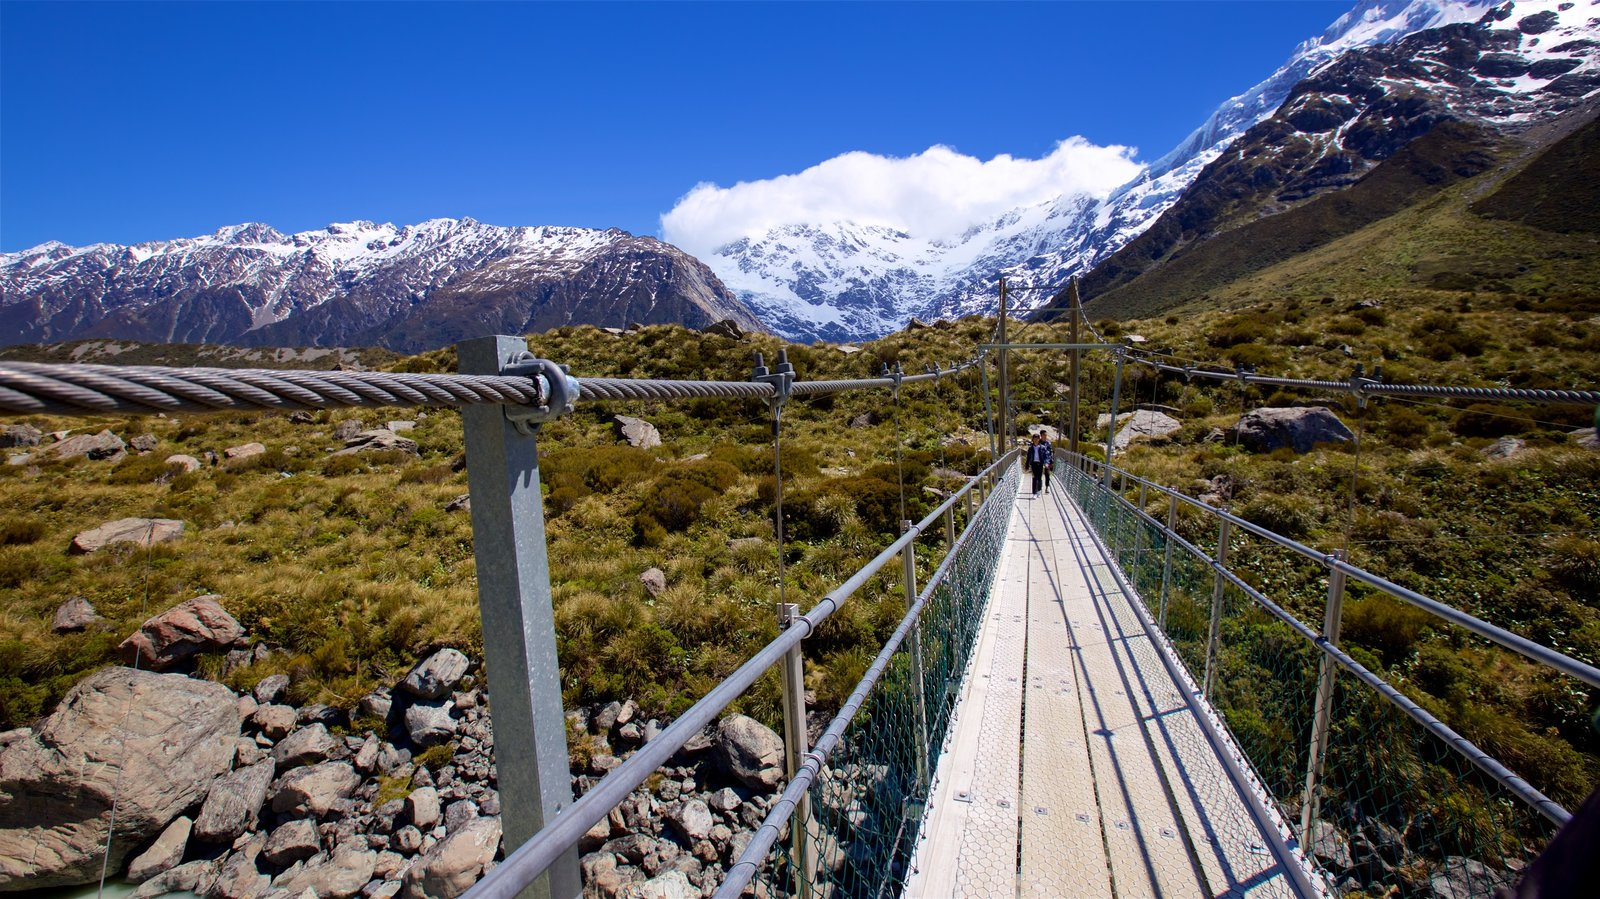 Mount Cook National Park which includes a bridge, mountains and snow